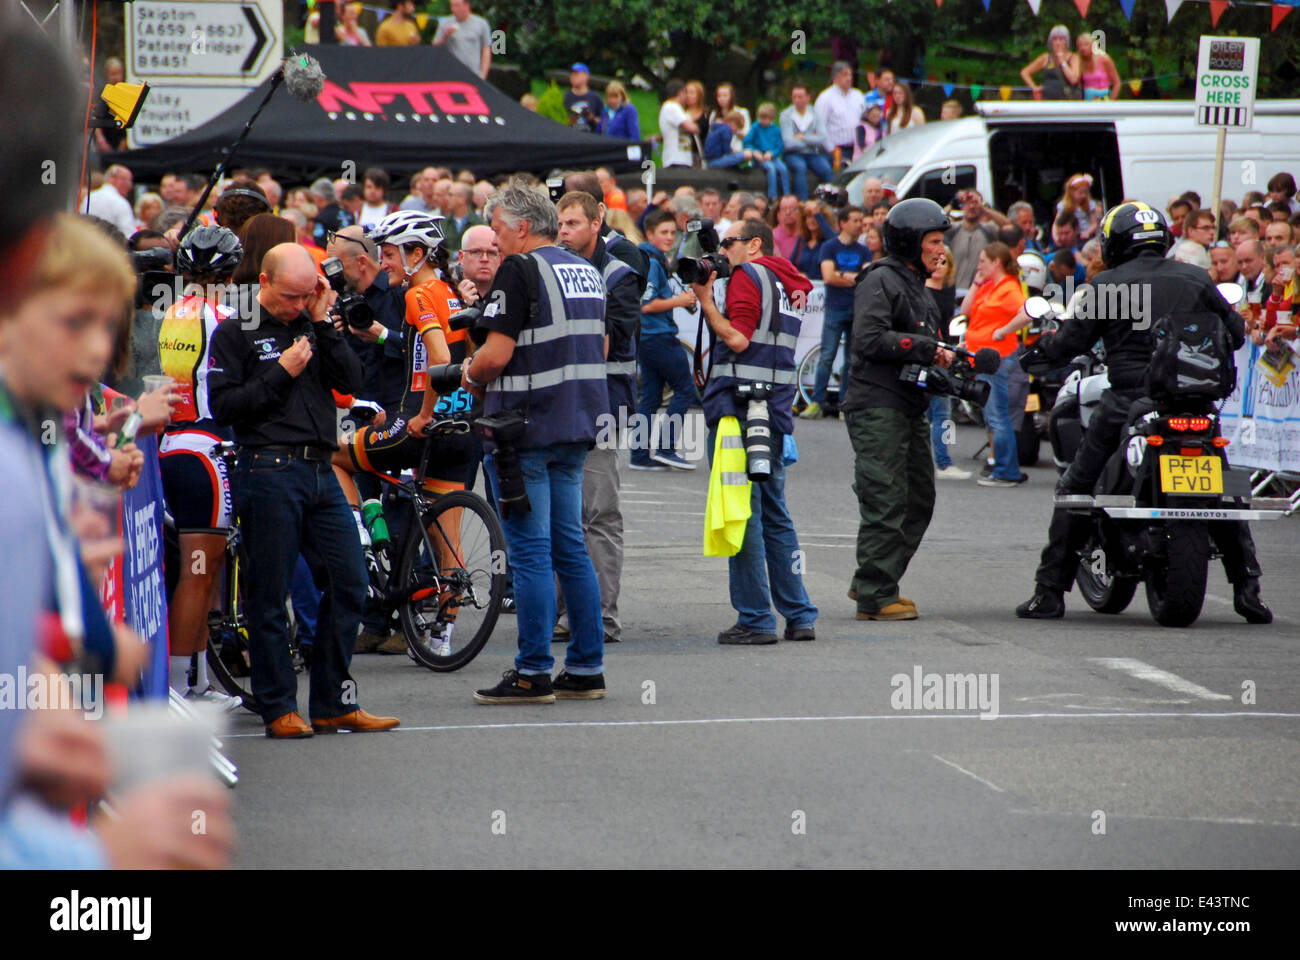 Lizzie Armitstead interviewed after win at Otley Races 2014 - Stock Image